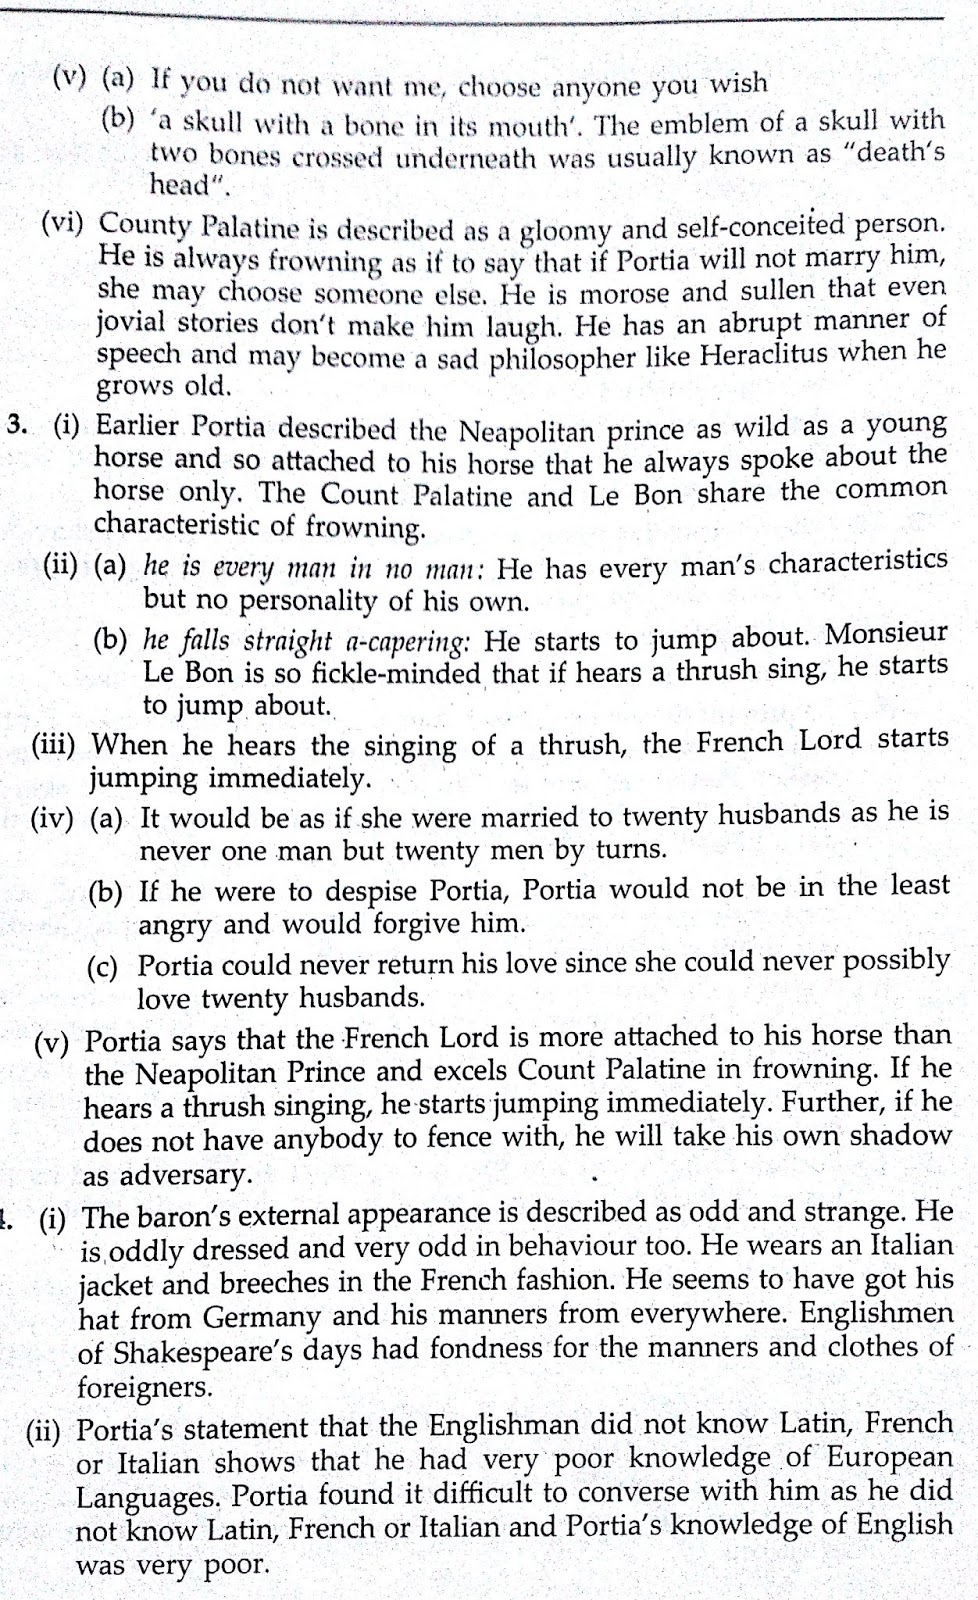 merchant of venice exam questions and answers pdf